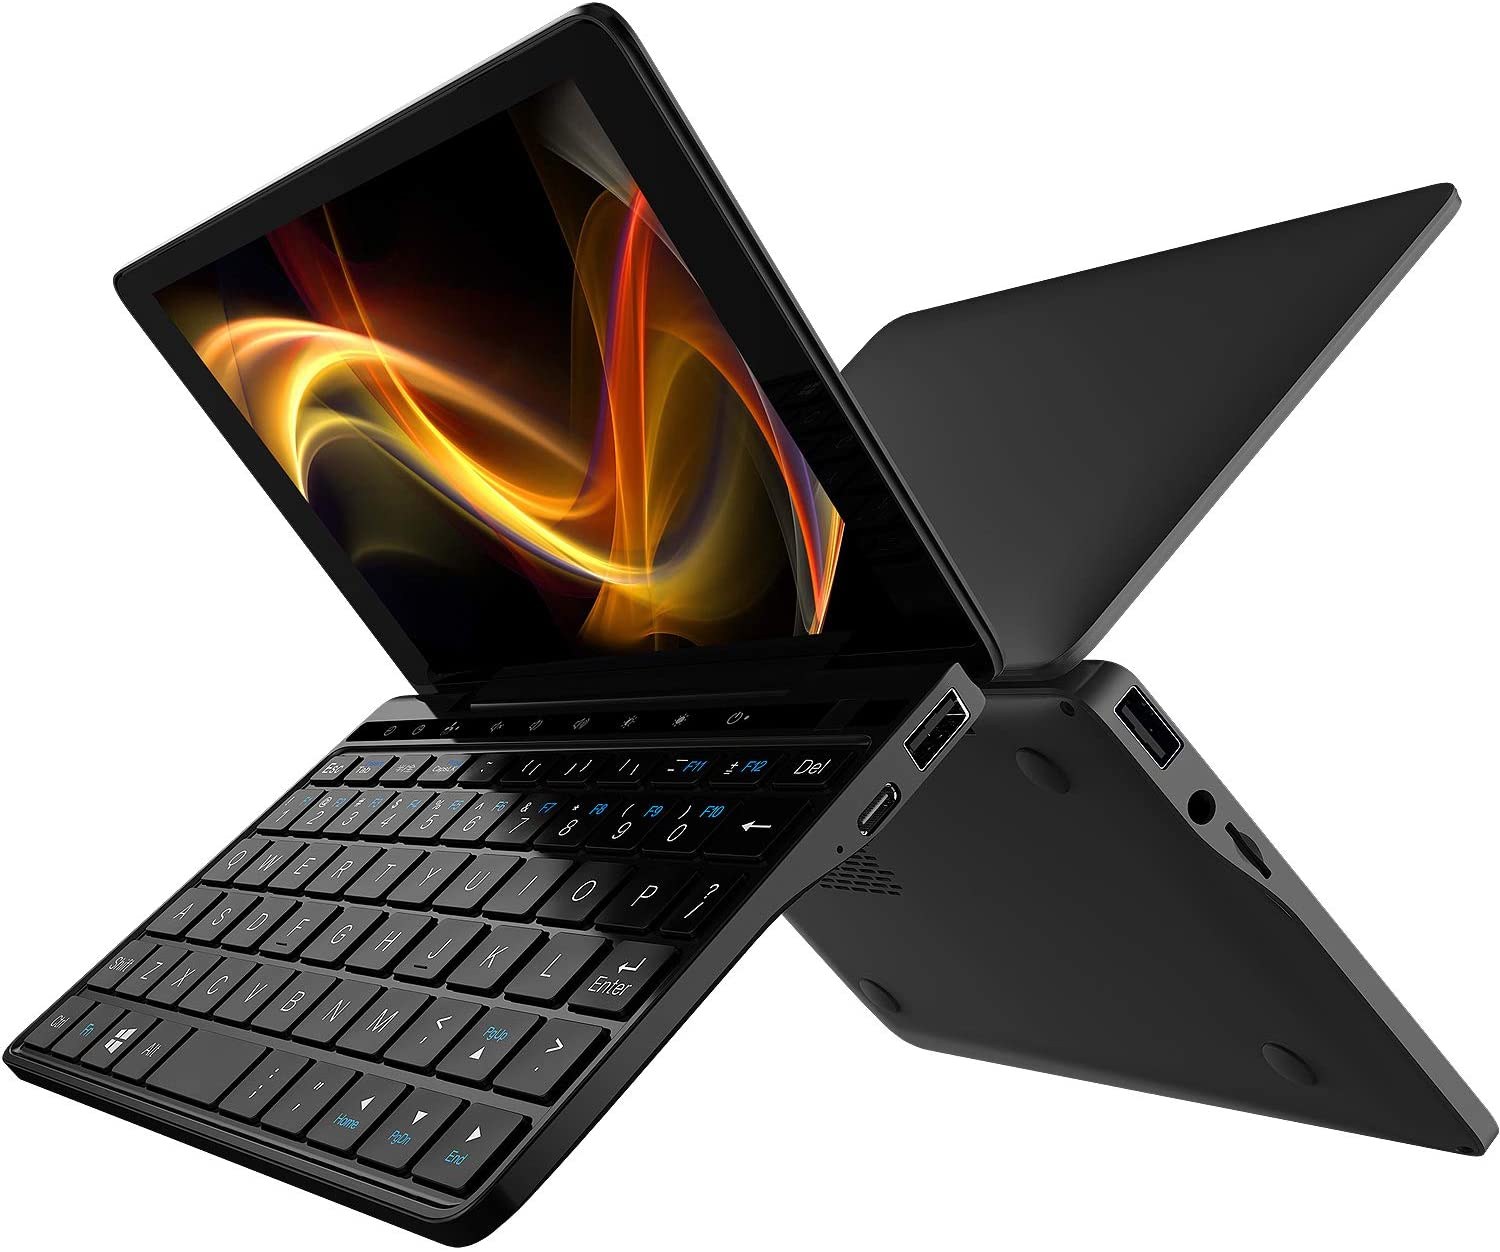 "GPD Pocket 2 Amber Black [Latest Update-256GB SSD Version] 7"" Touch Screen Windows 10 Mini Portable Laptop UMPC Tablet PC CPU Intel Celeron Processor 3965Y lntel HD Graphics 615 8GB RAM/256GB ROM"